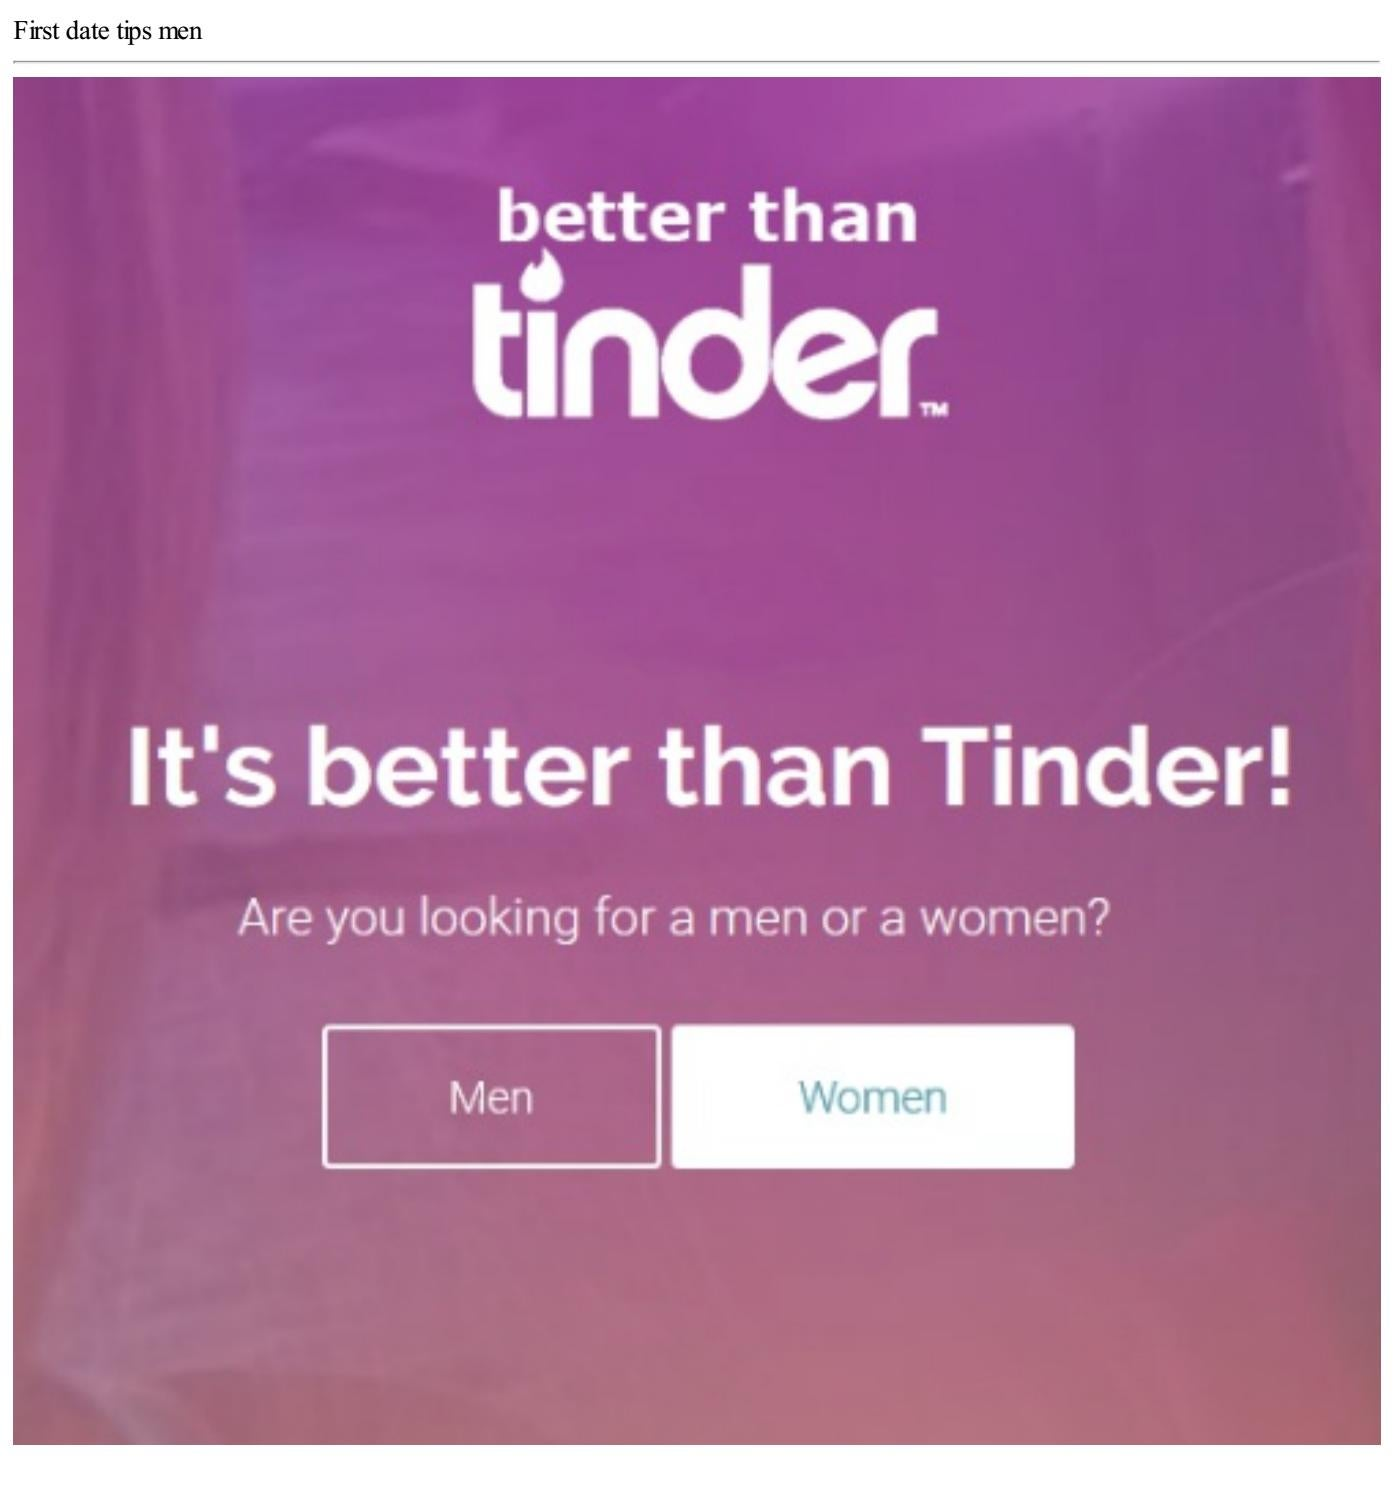 tips for a first date from tinder